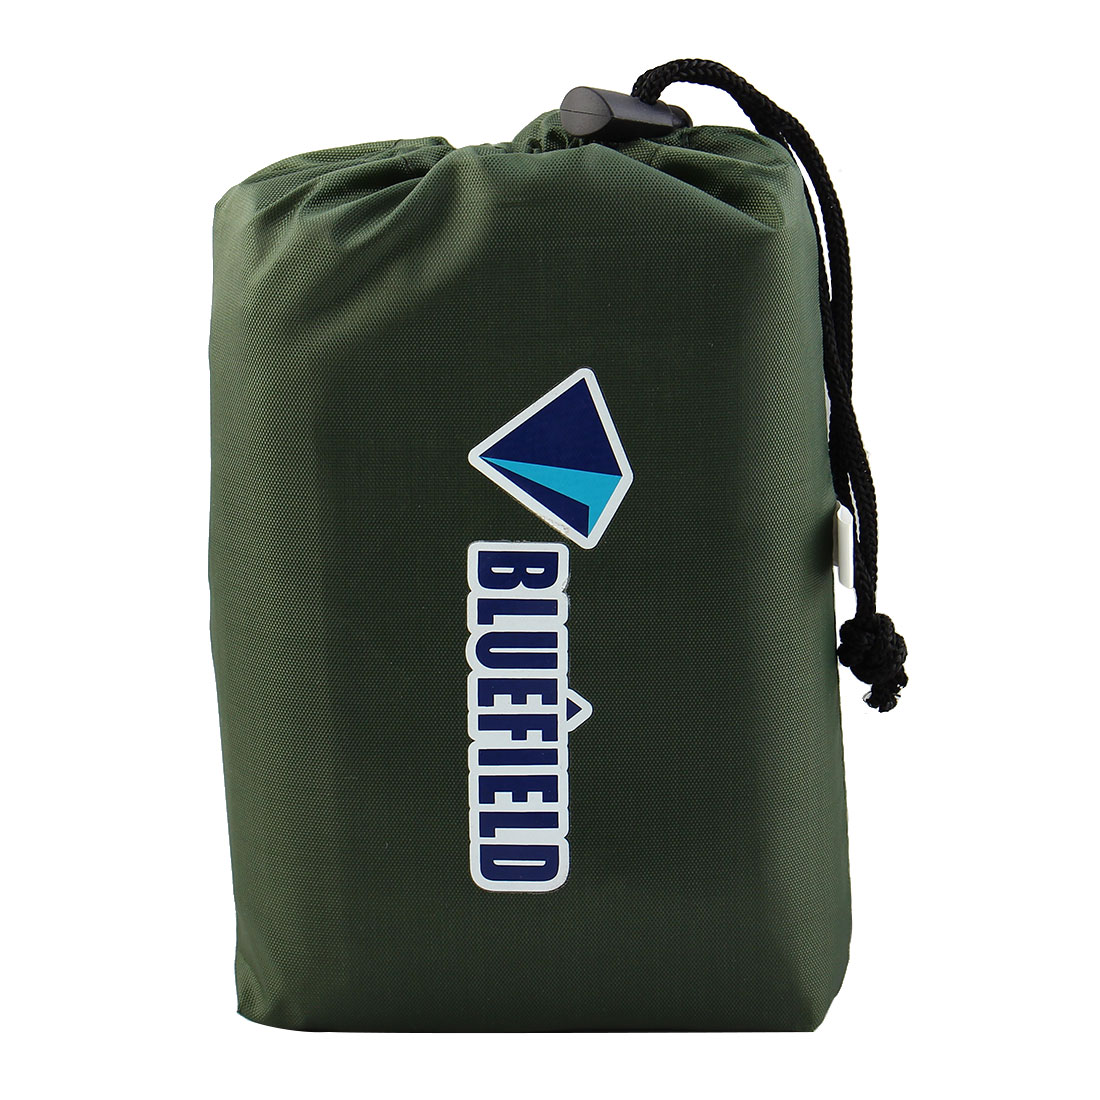 Bluefield Authorized Beach Outdoor Water Resistant Picnic Blanket Foldable Camping Mat Pad Dark Green